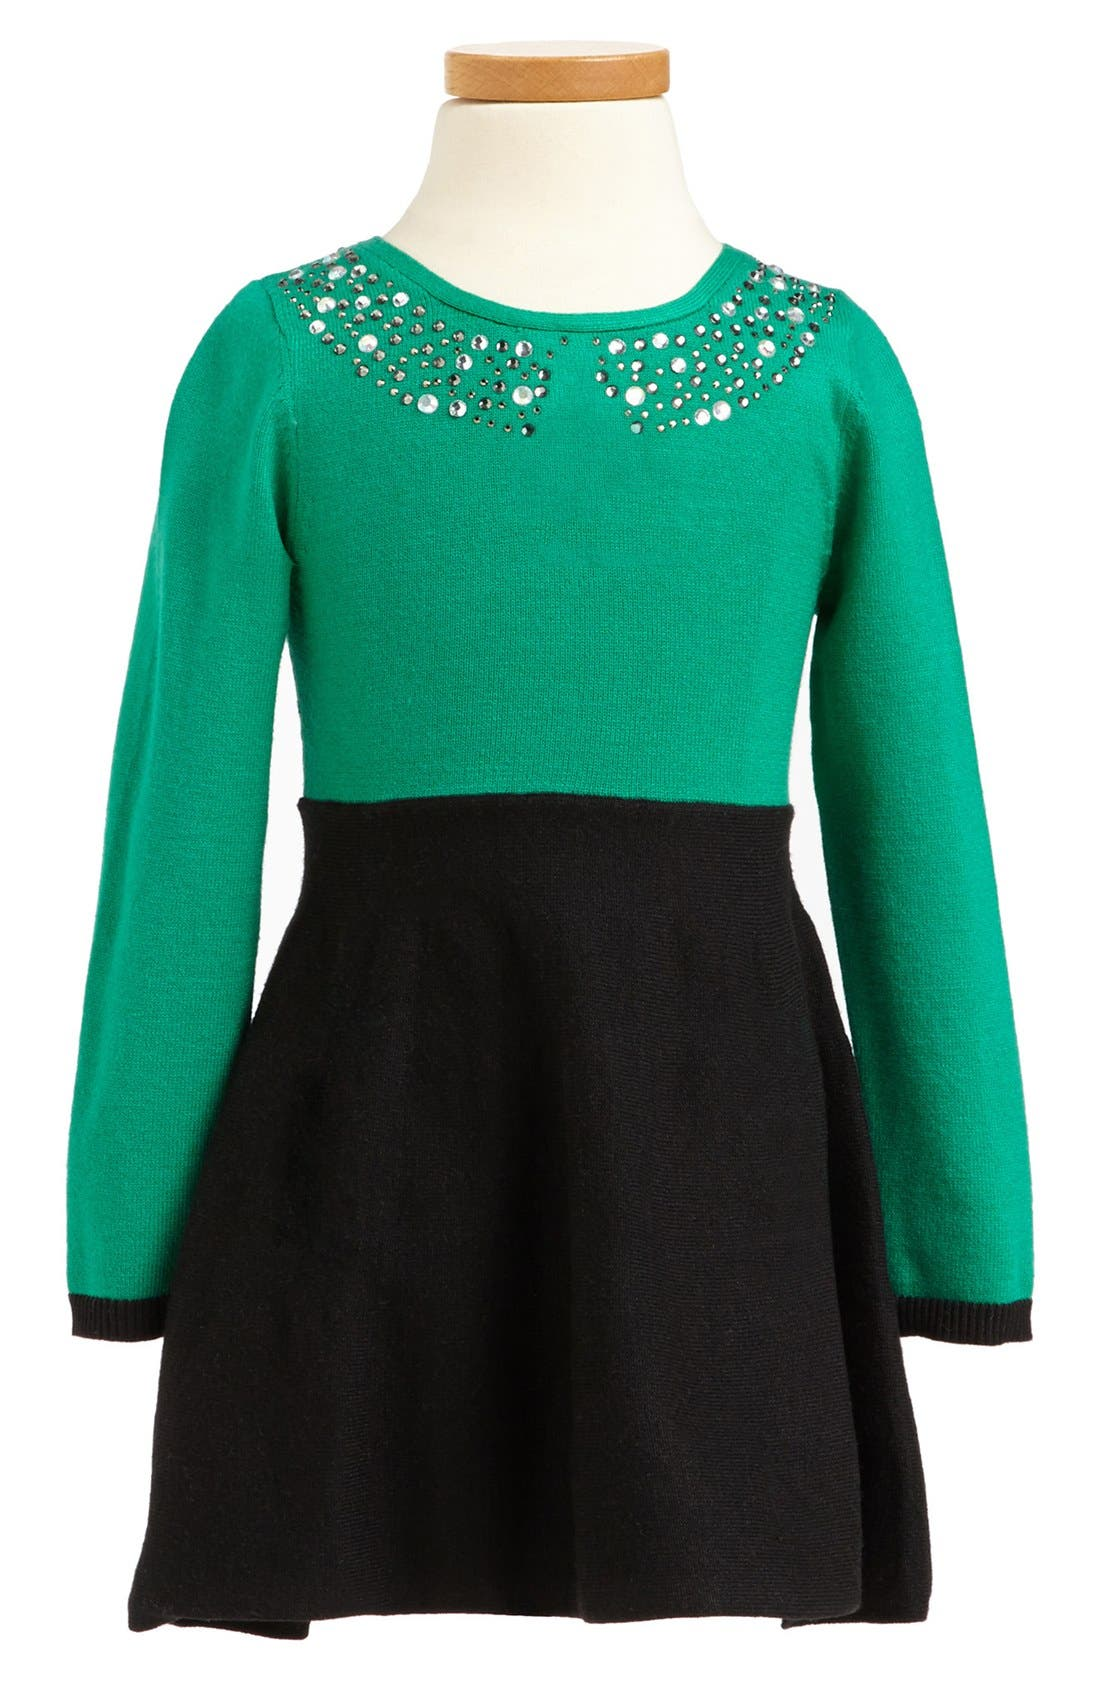 Main Image - Milly Minis Rhinestone Collar Dress (Toddler Girls, Little Girls & Big Girls)